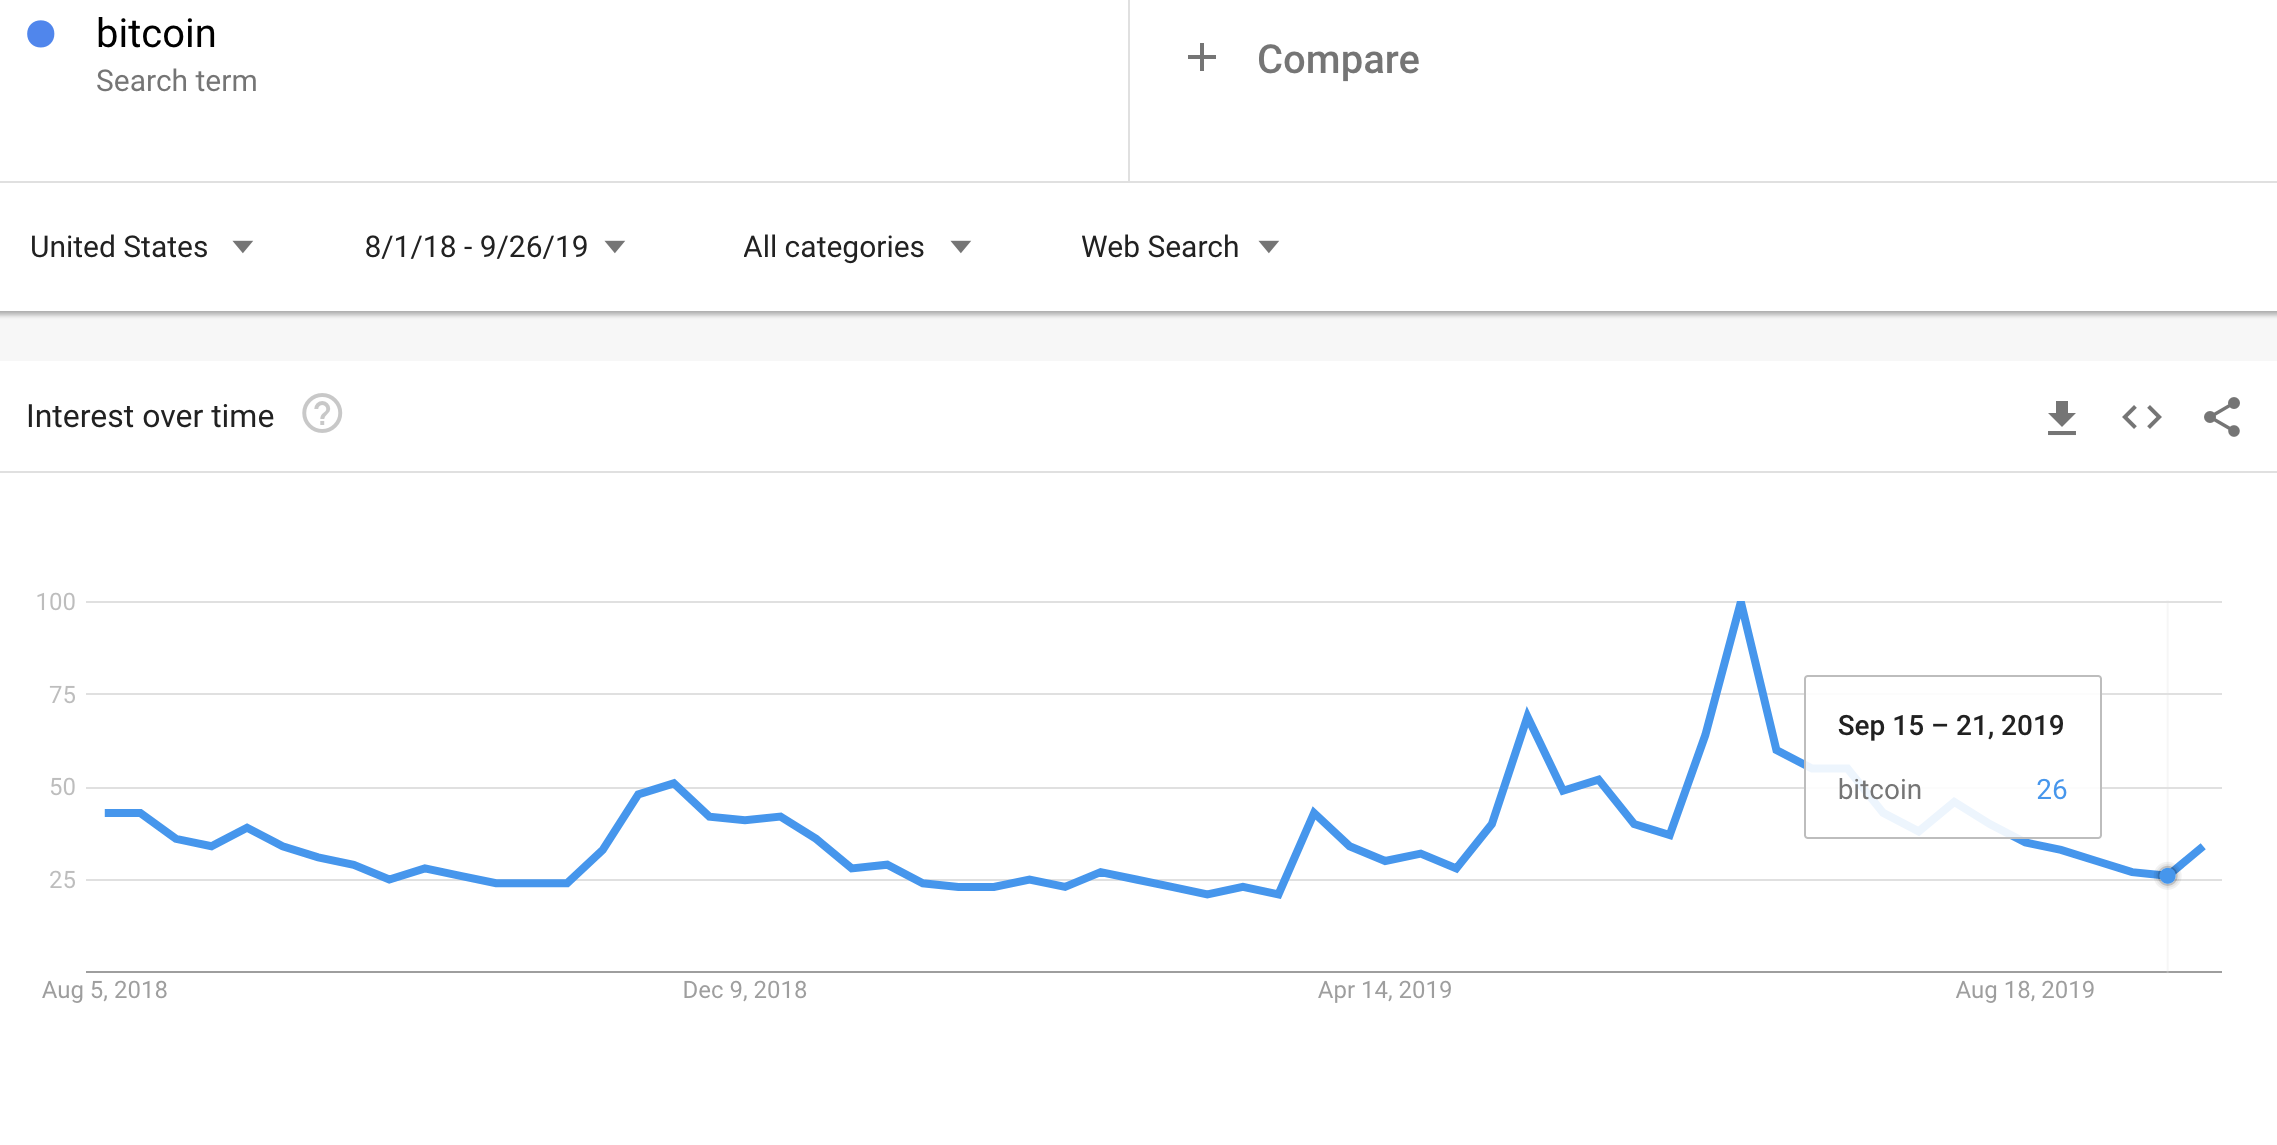 Google trends for Bitcoin over the last 13 months has provided useful and telling bouts of volatility.